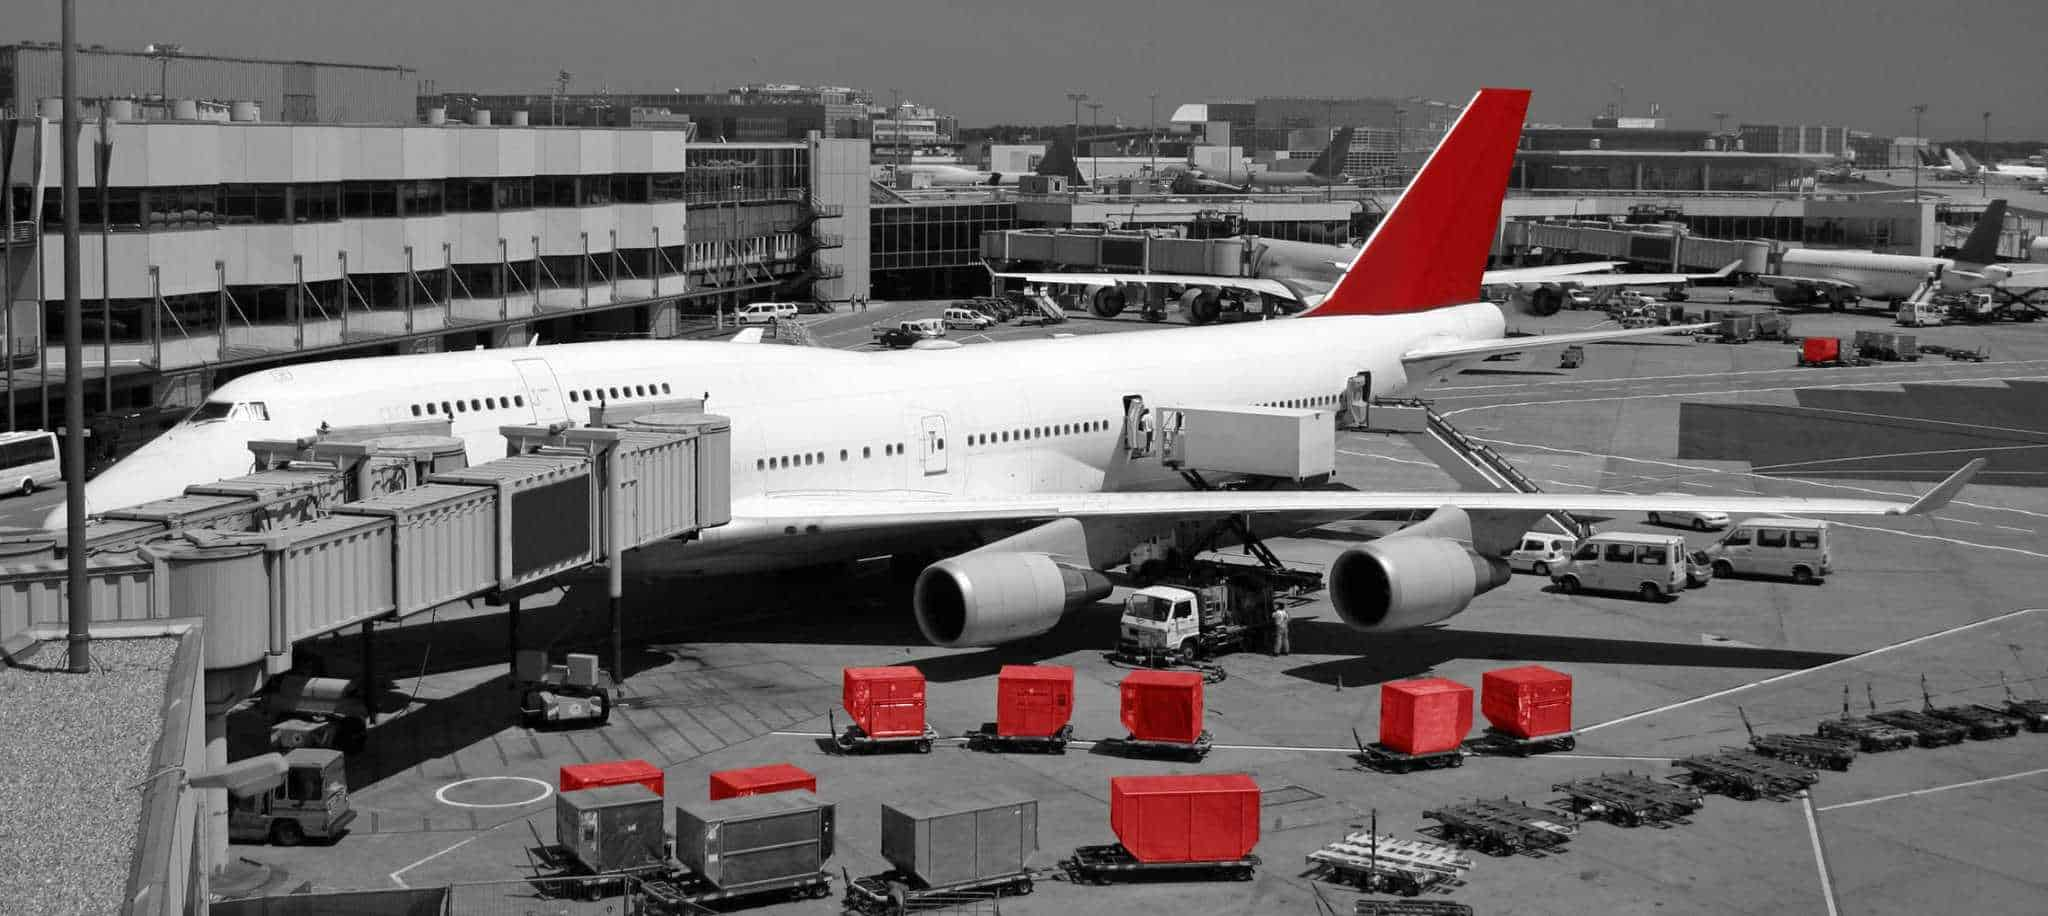 Air freight containers